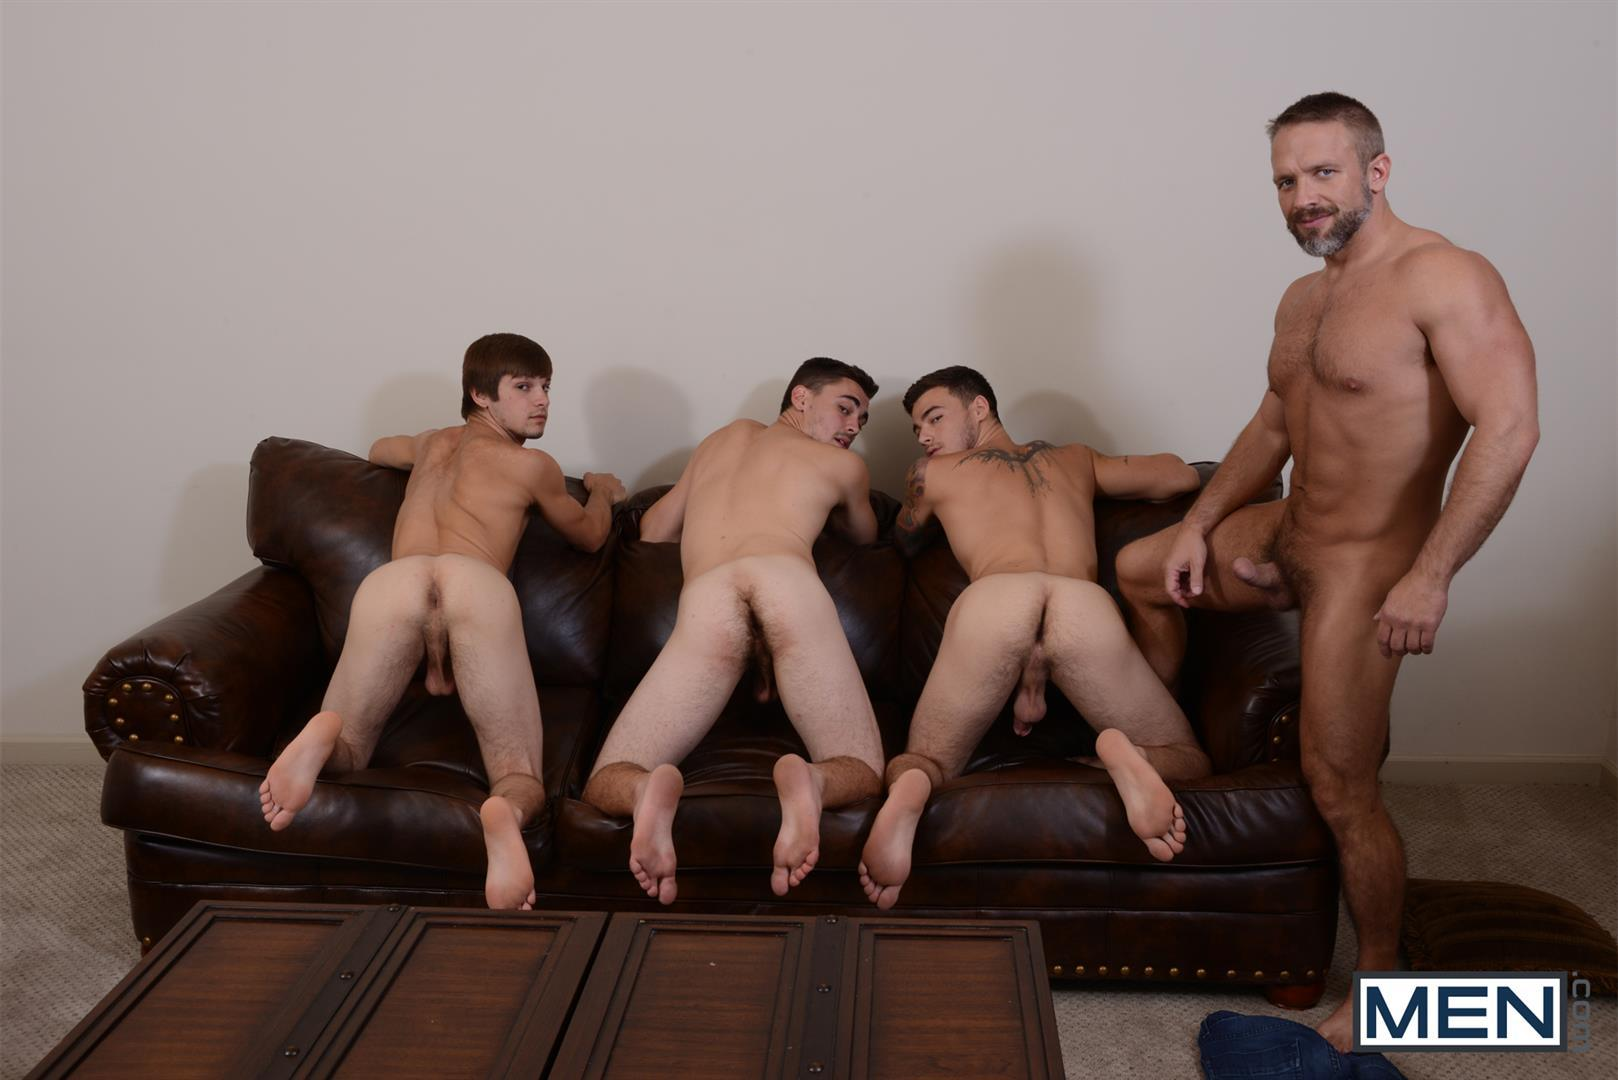 Men-Jizz-Orgy-Asher-Hawk-and-Dirk-Caber-and-Johnny-Rapid-and-Trevor-Spade-Triple-Penetrated-In-the-Ass-Amateur-Gay-Porn-10 Stepfather Dirk Caber Gets TRIPLE Penetrated By His Stepsons